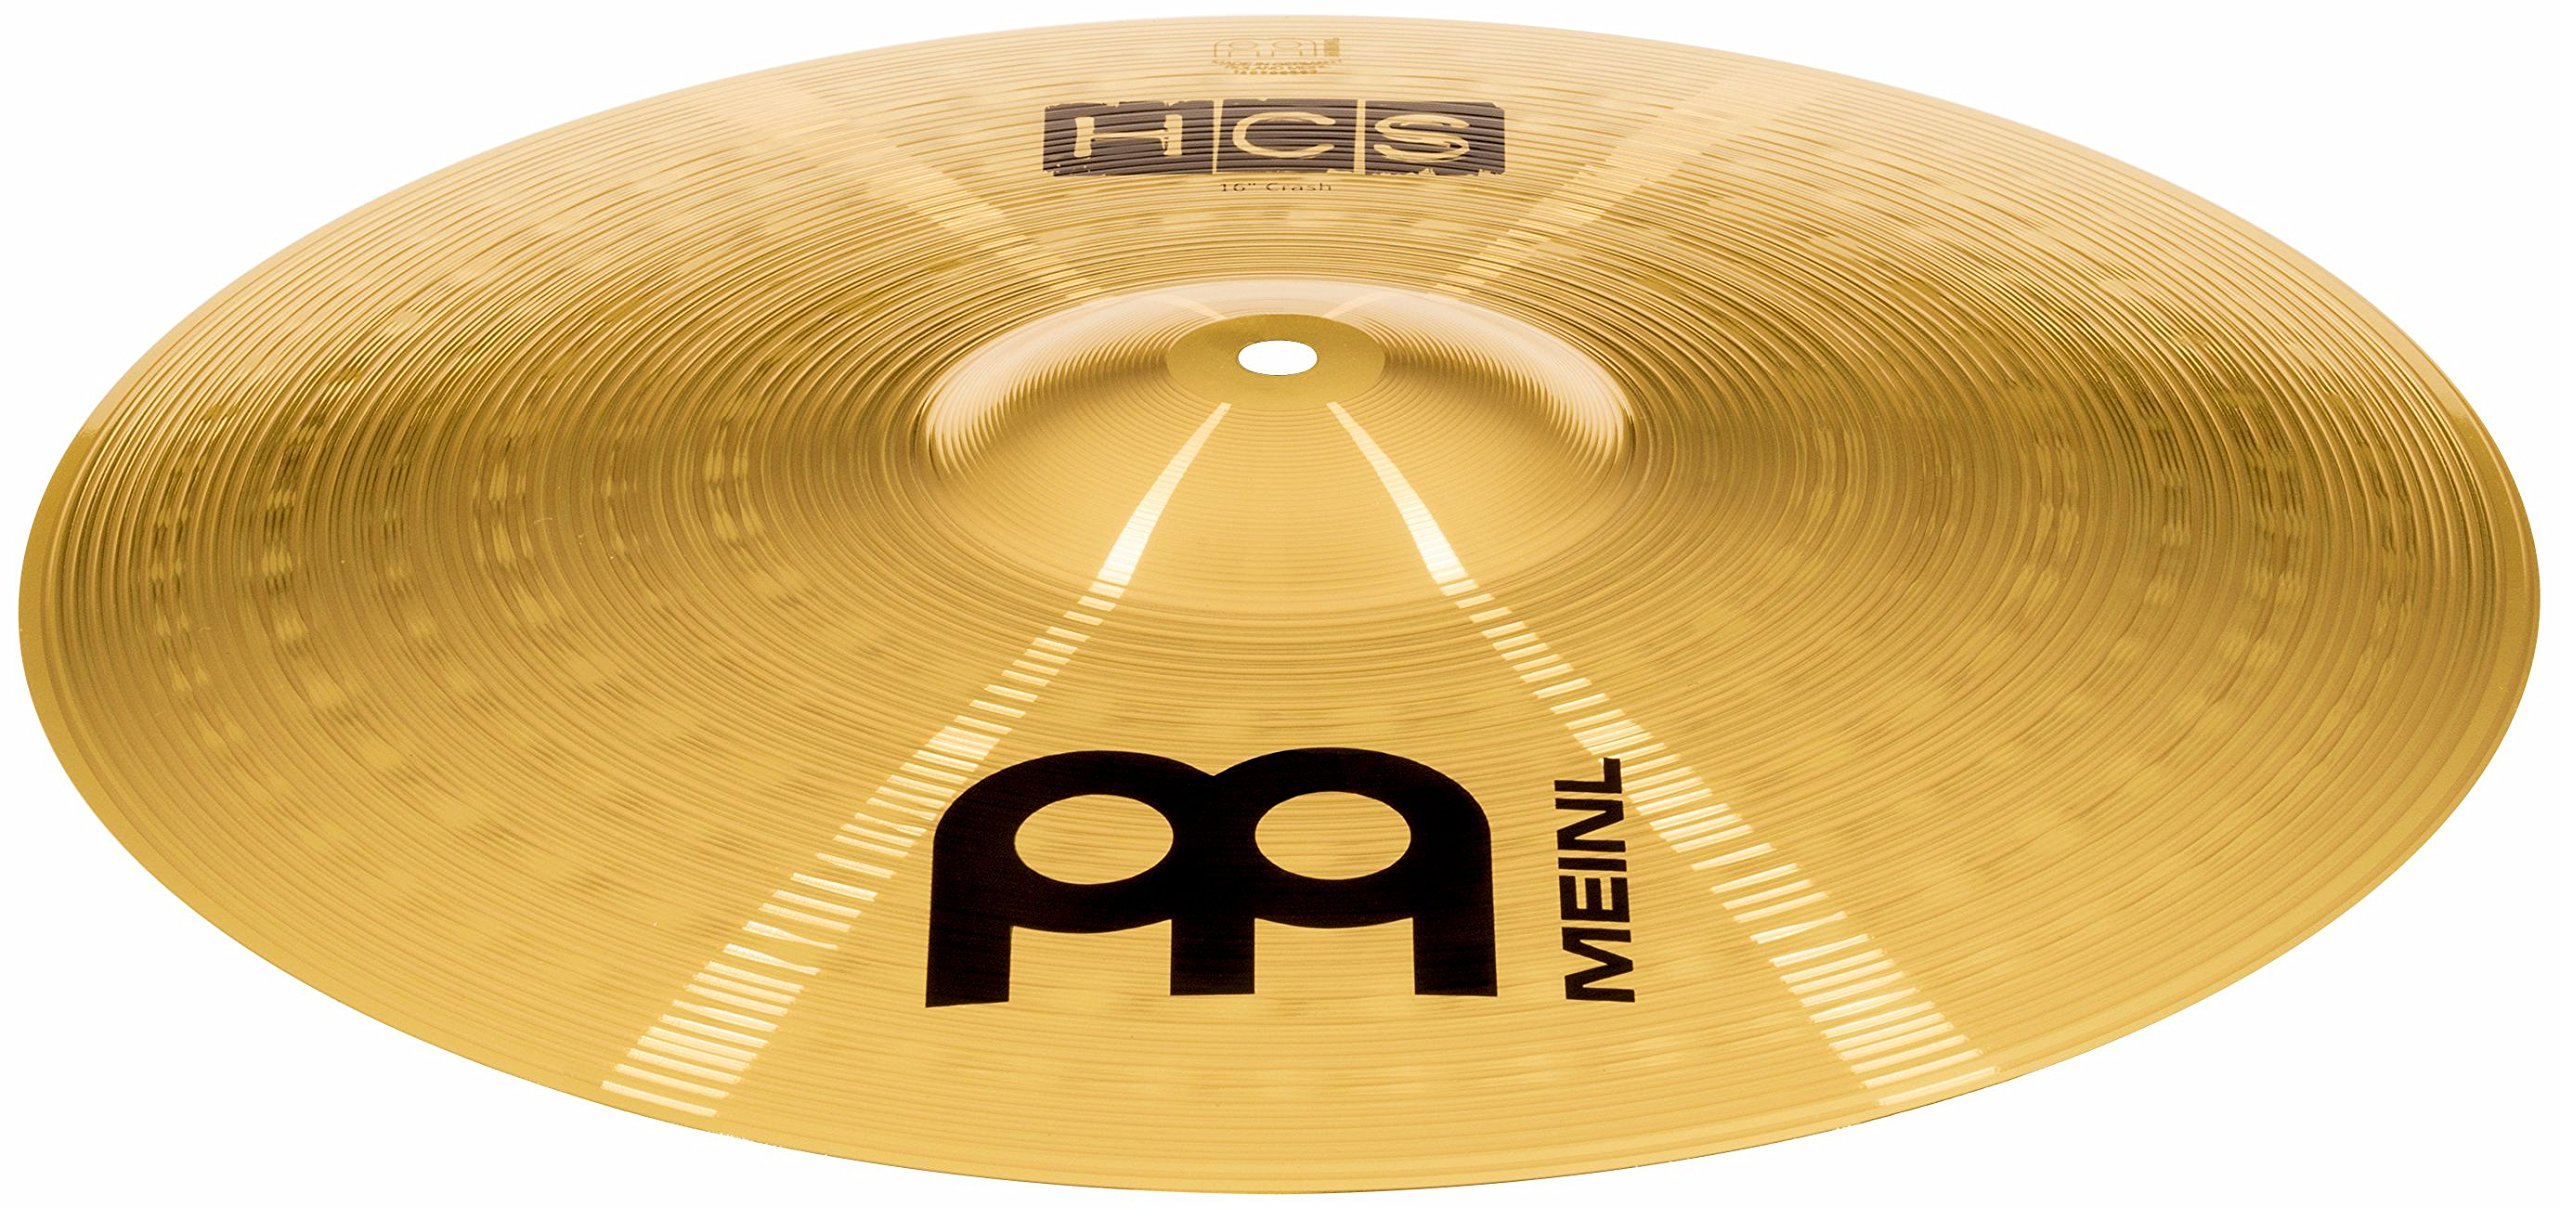 Meinl Cymbals HCS16C 16'' HCS Brass Crash Cymbal for Drum Set (VIDEO) by Meinl Cymbals (Image #3)